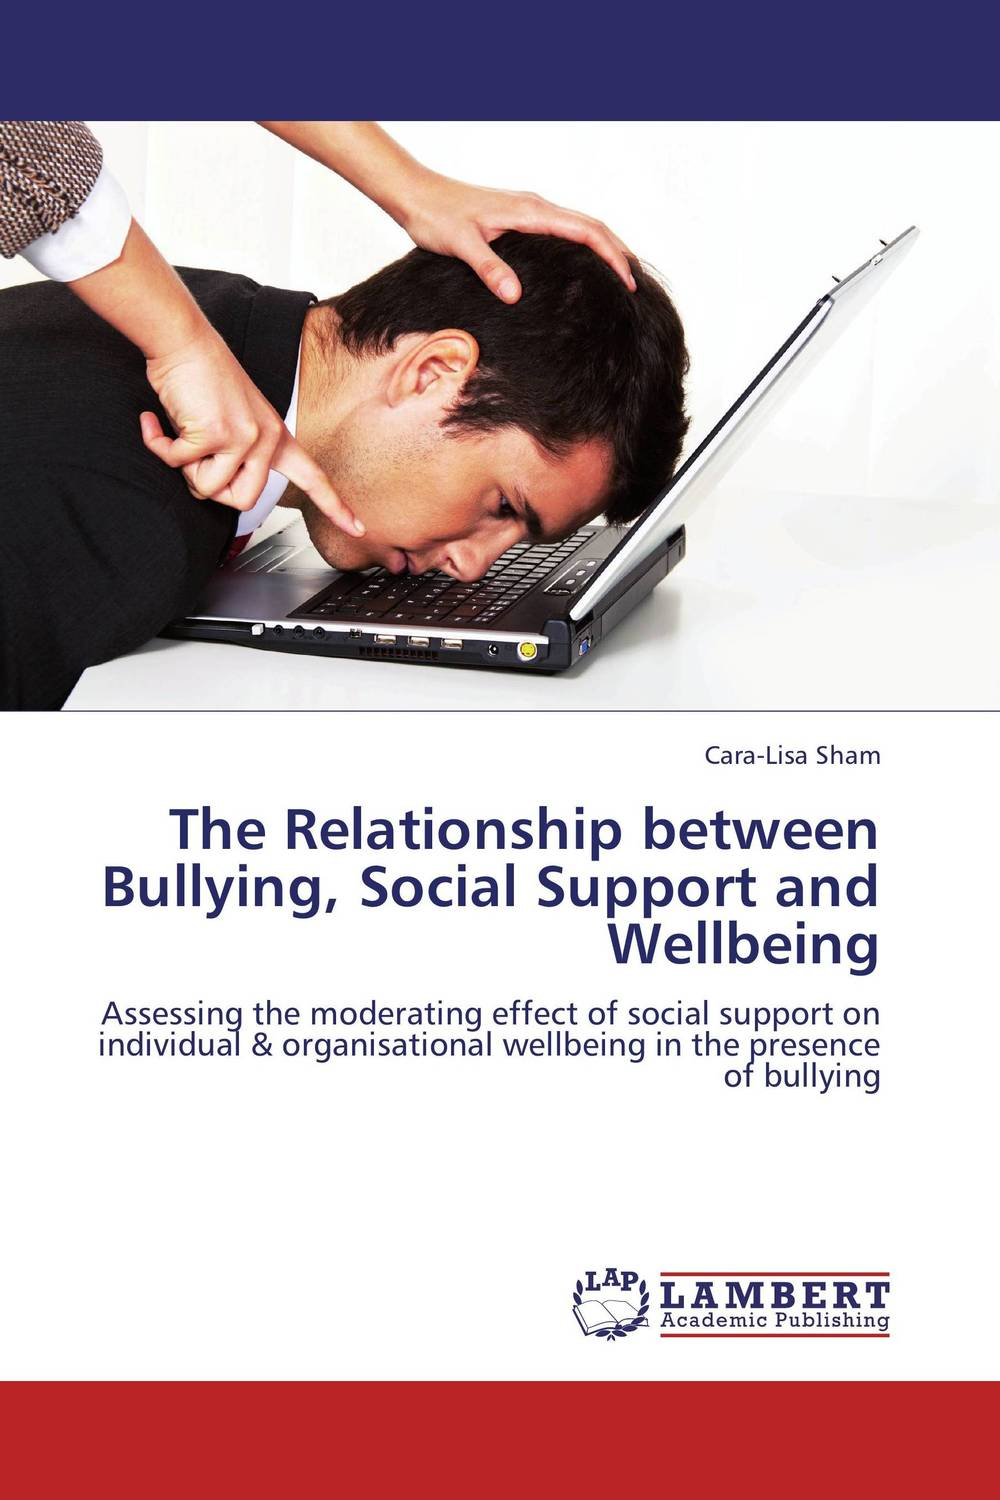 The Relationship between Bullying, Social Support and Wellbeing  fritz ilongo workplace bullying as psychological violence in tertiary institutions